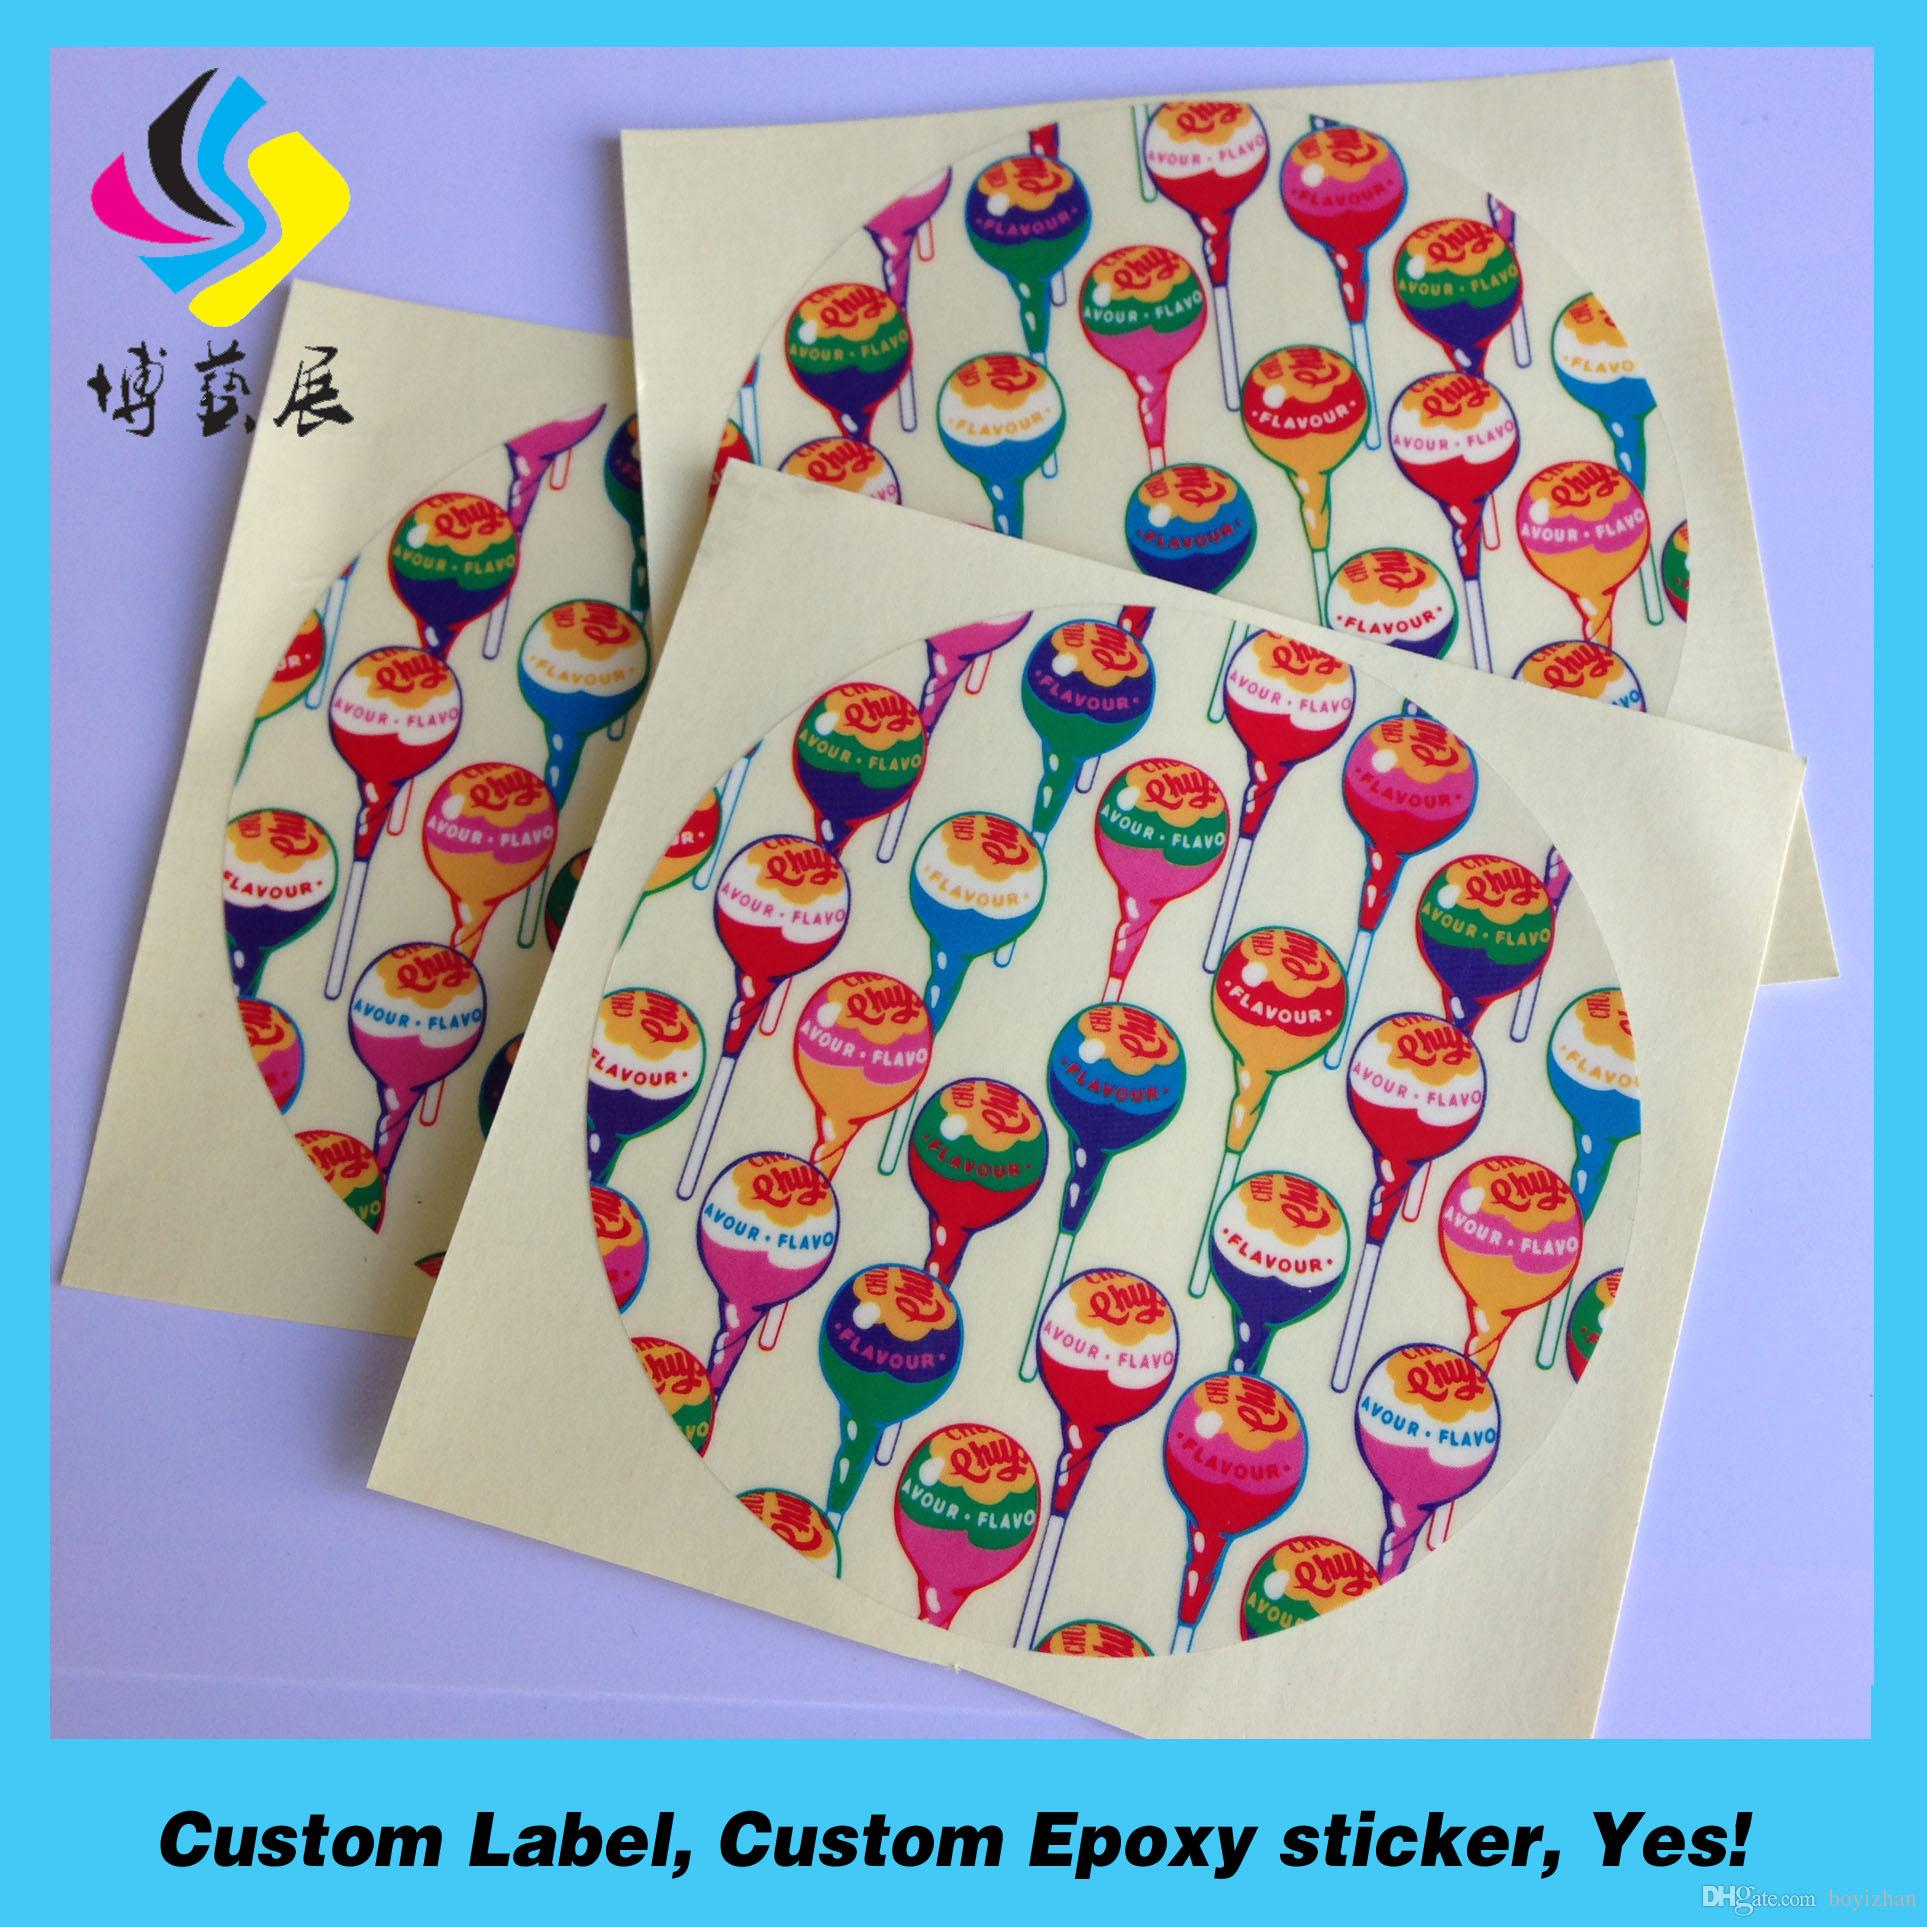 Make custom waterproof stickers in all the colors you need. #customstickers  #circlestickers #